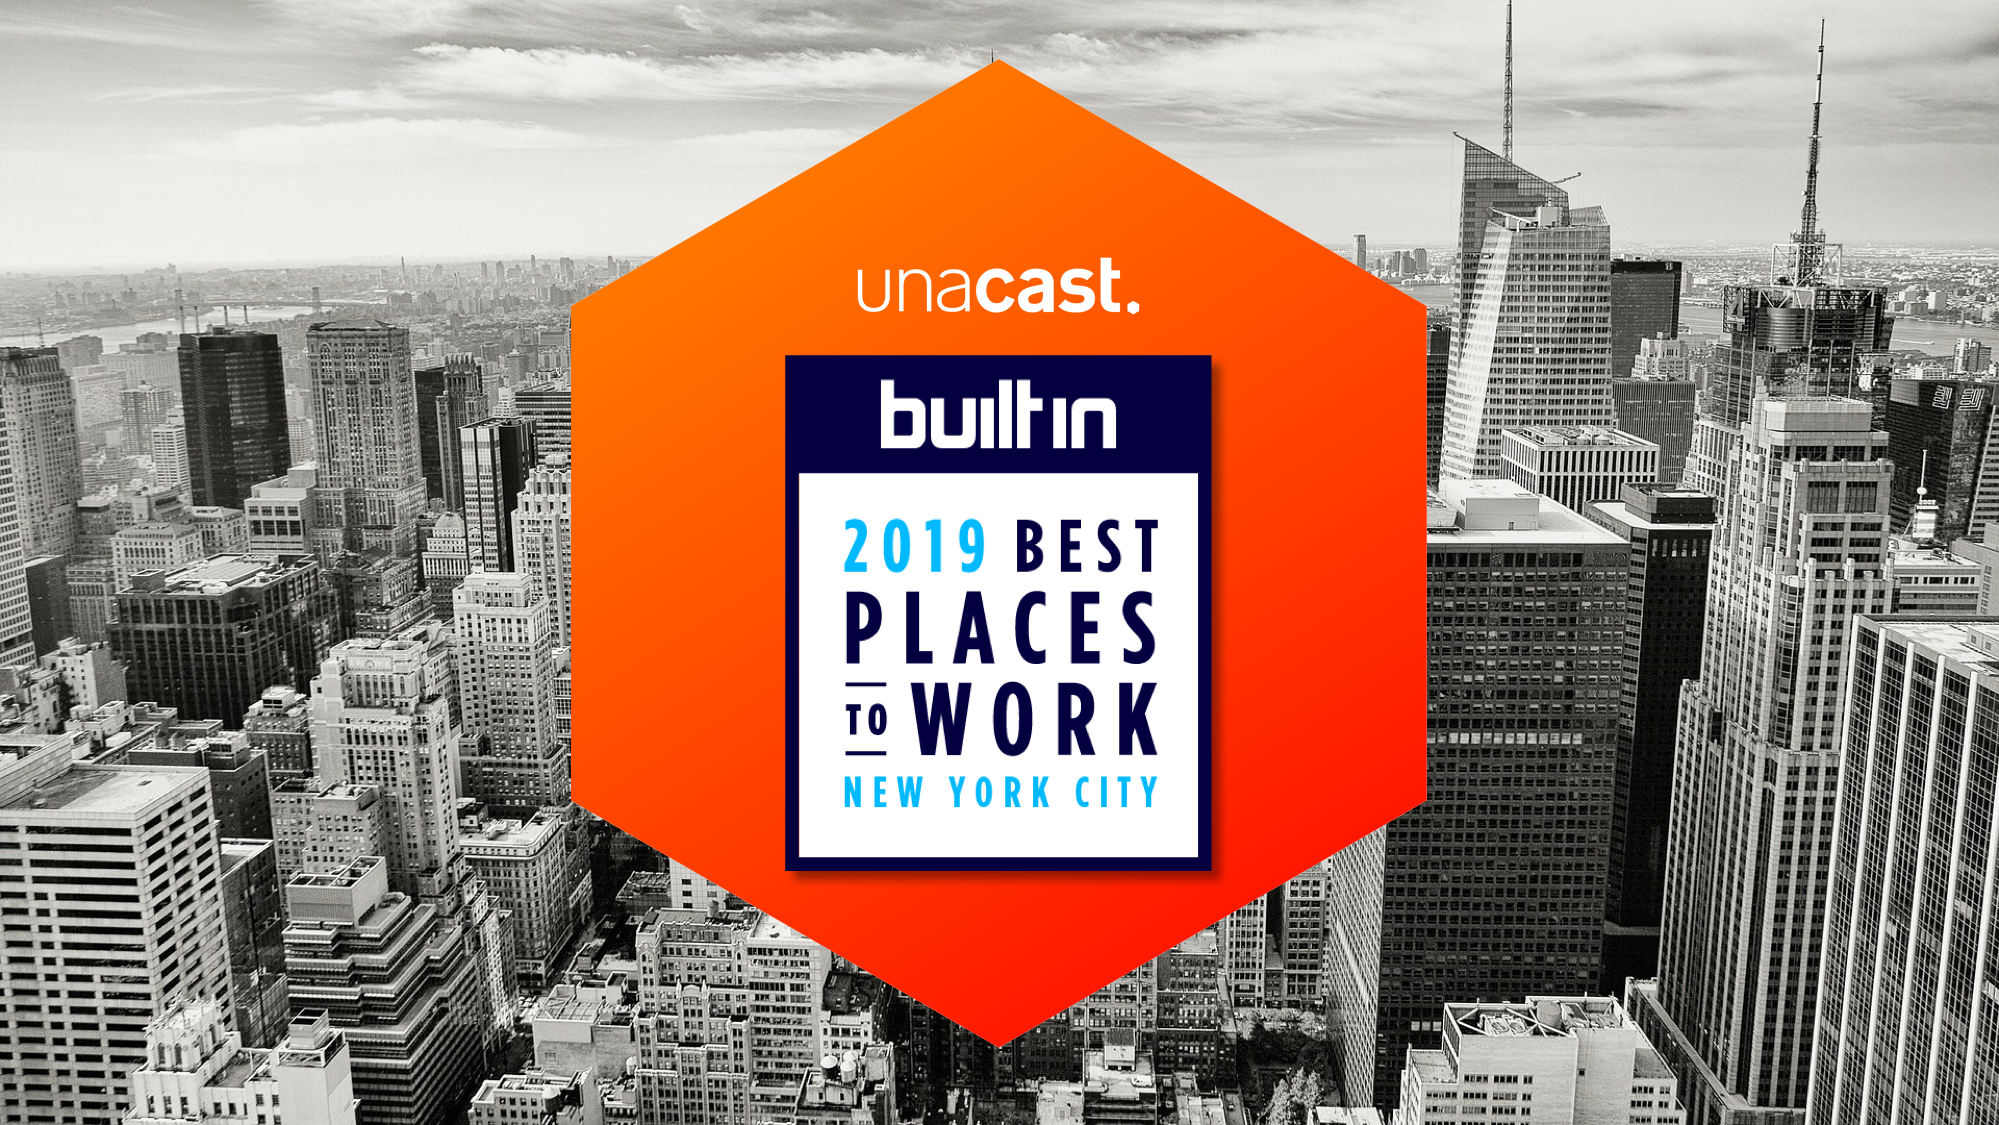 Unacast is Awarded Best Places To Work in NYC 2019